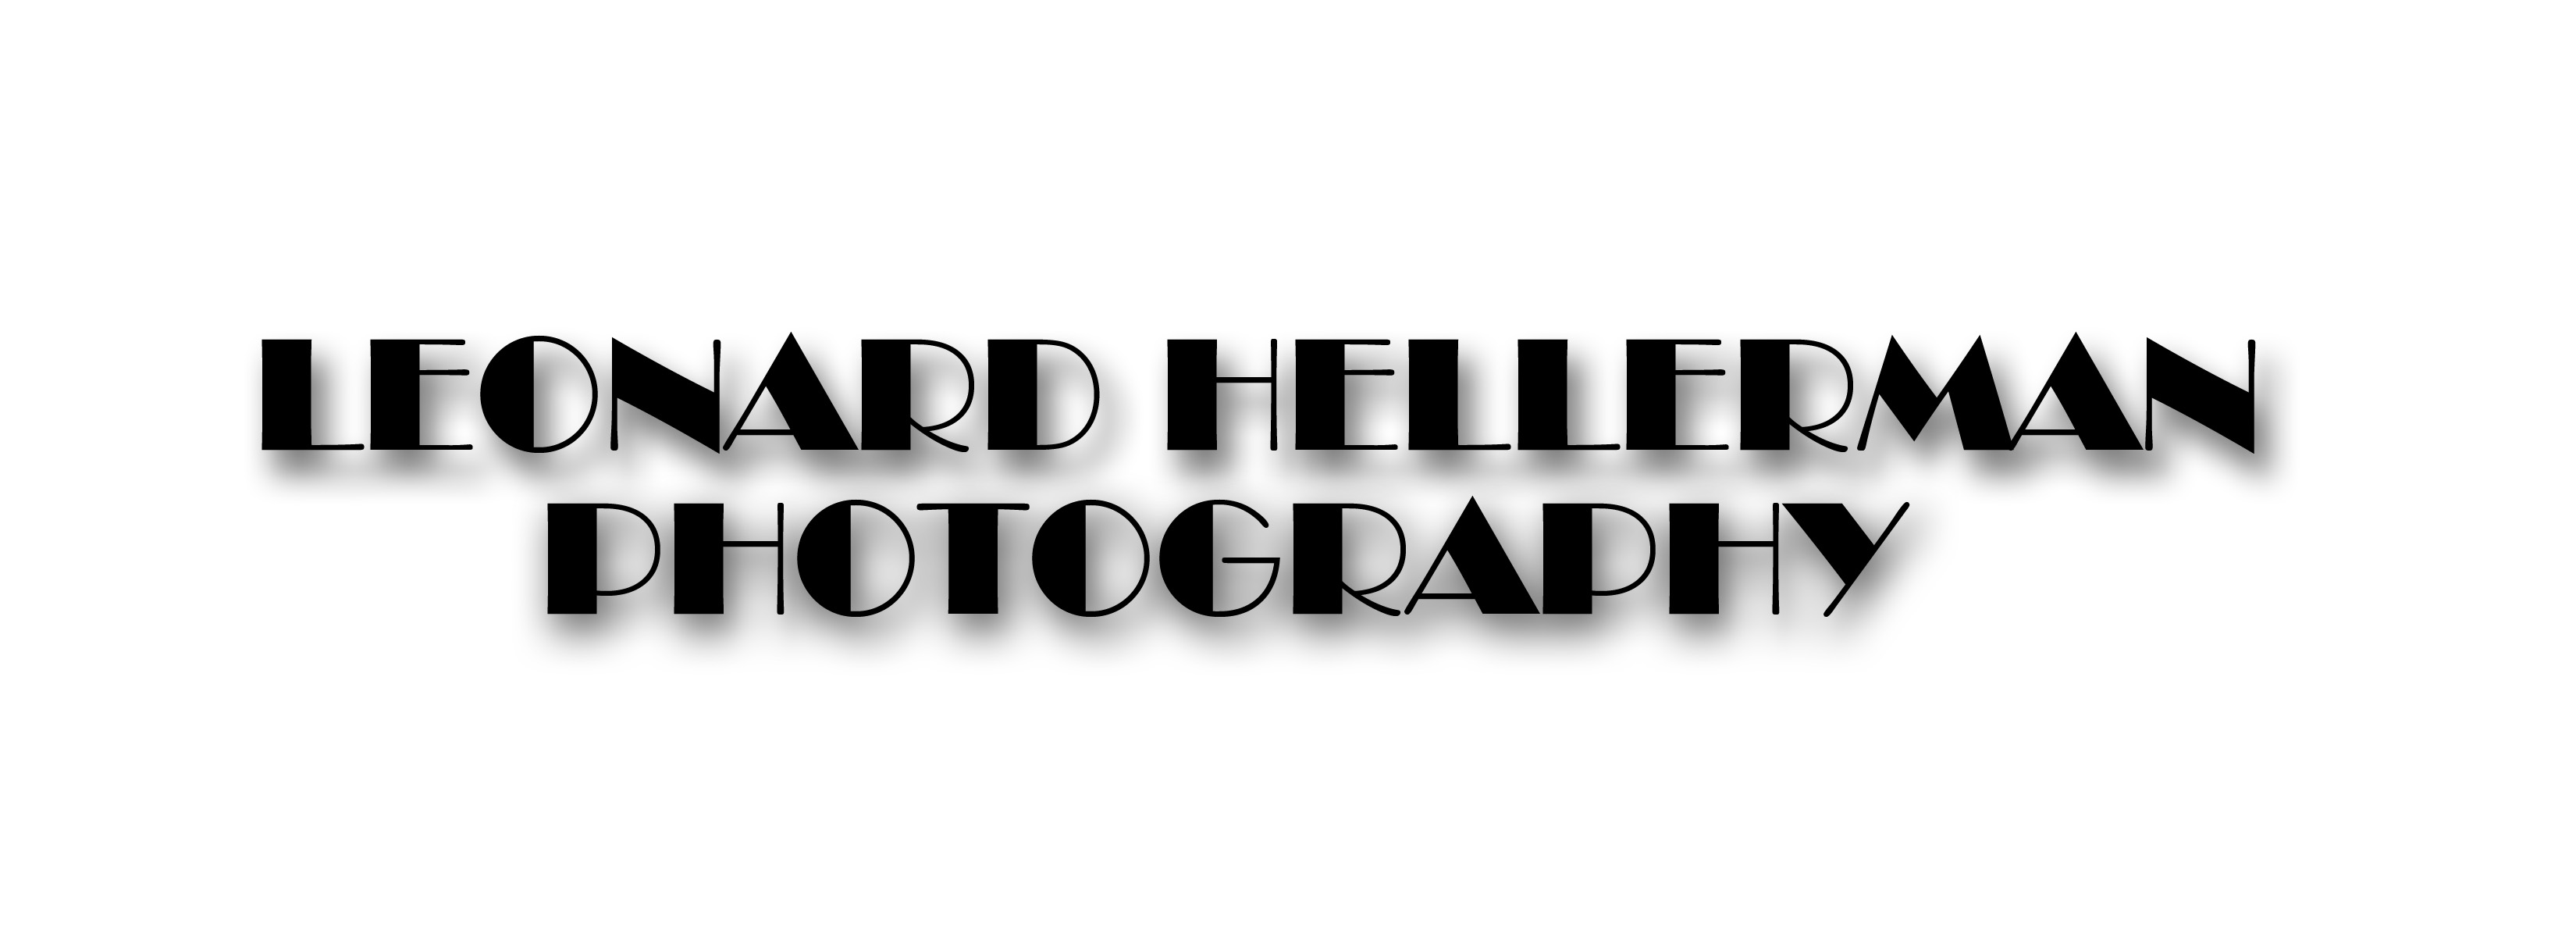 Leonard Hellerman Photography